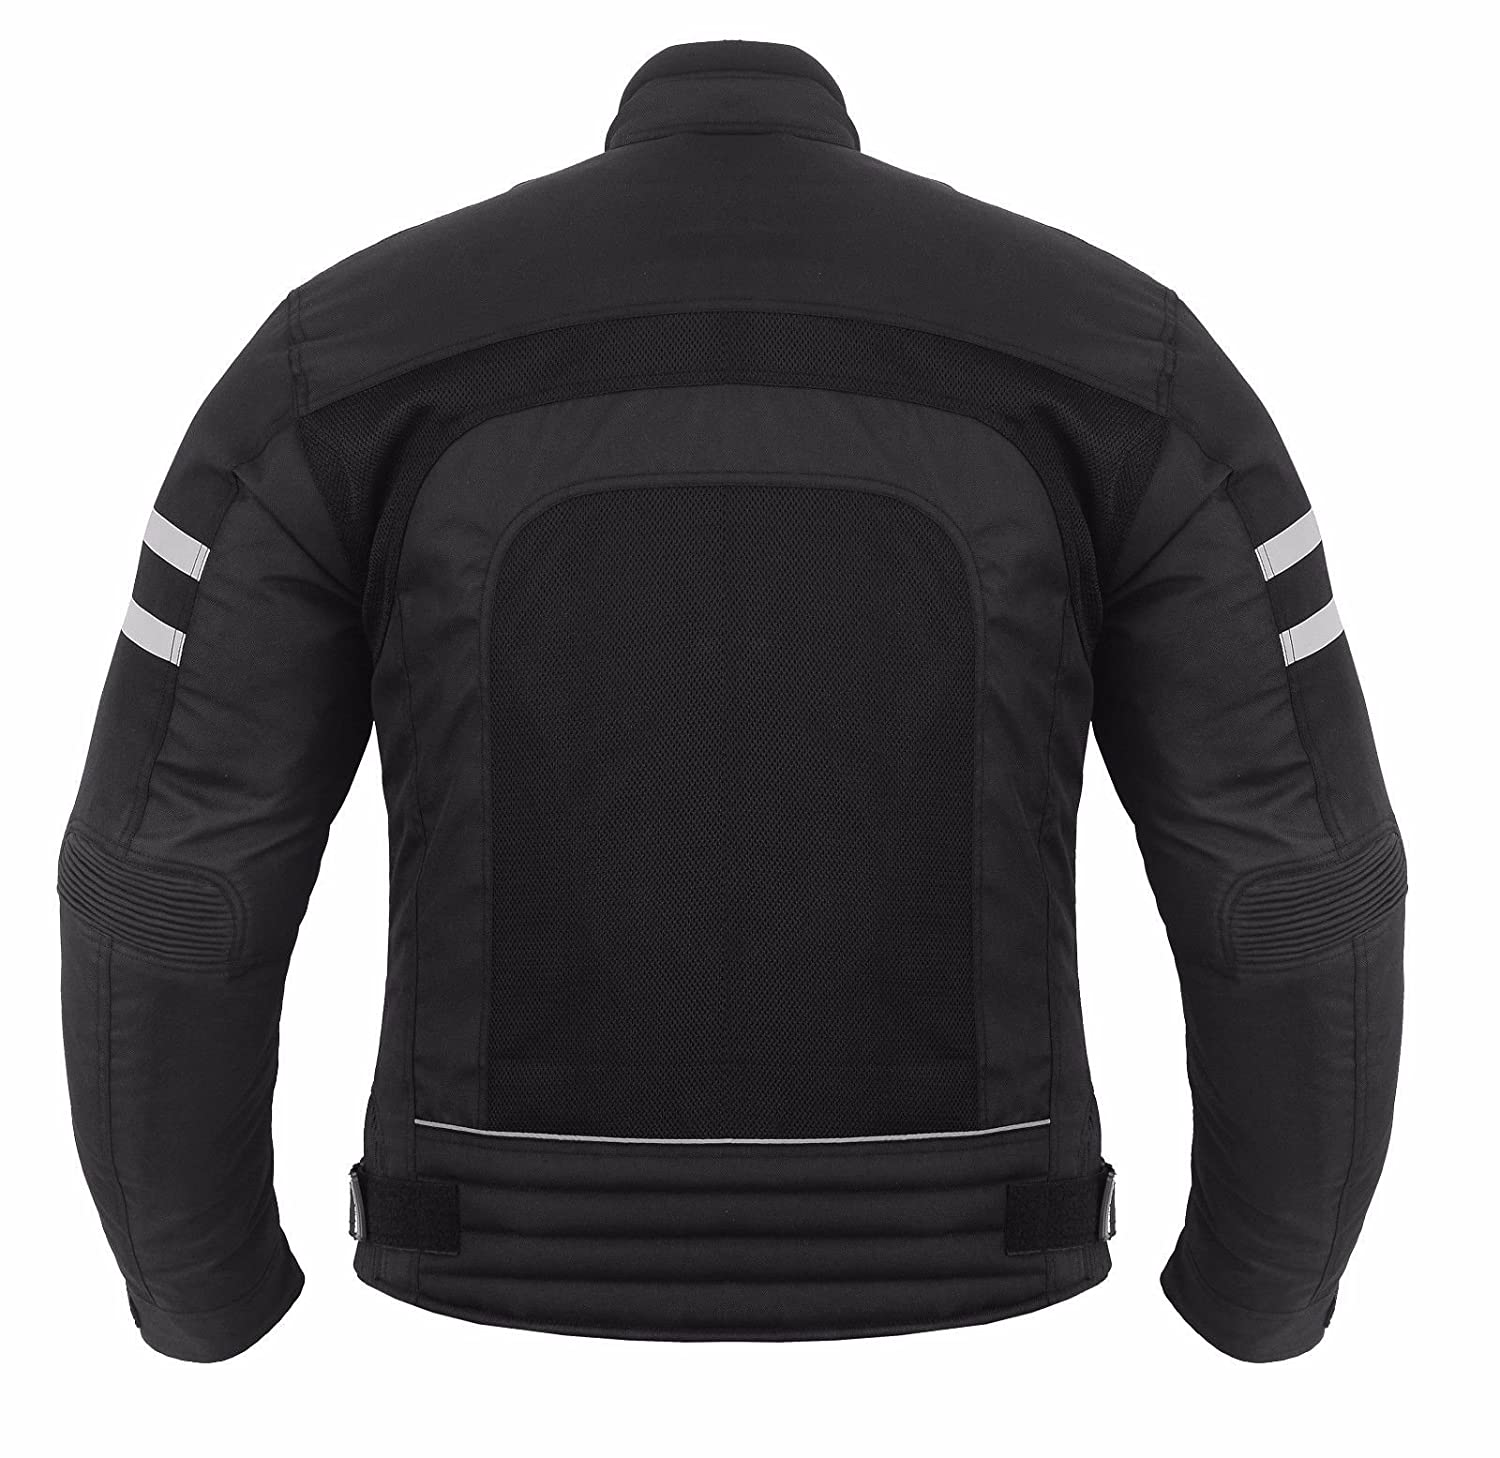 Motorbike Motorcycle Summer Jacket Hot Weather Gears Coats Cordura Fabric CE Approved Armoured Full Black